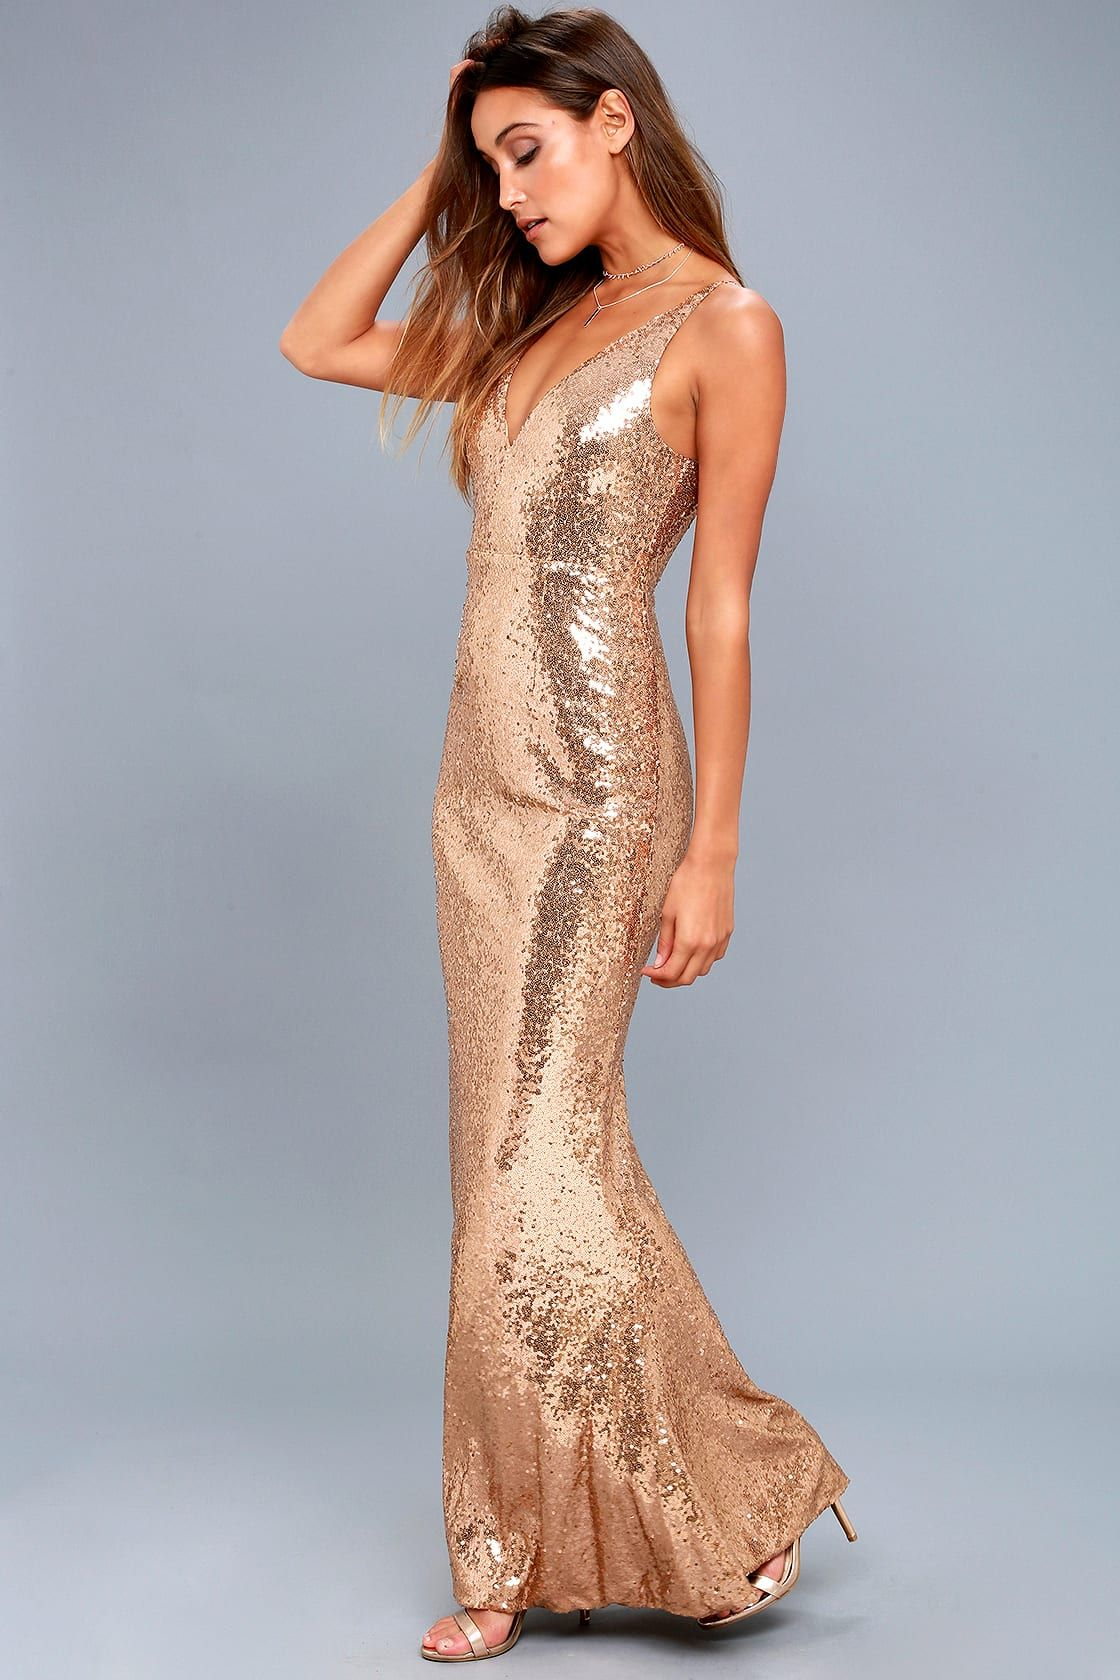 Here To Wow Gold Sequin Maxi Dress Gold Sequin Dress Sequin Maxi Dress Blue Sequin Dress [ 1680 x 1120 Pixel ]